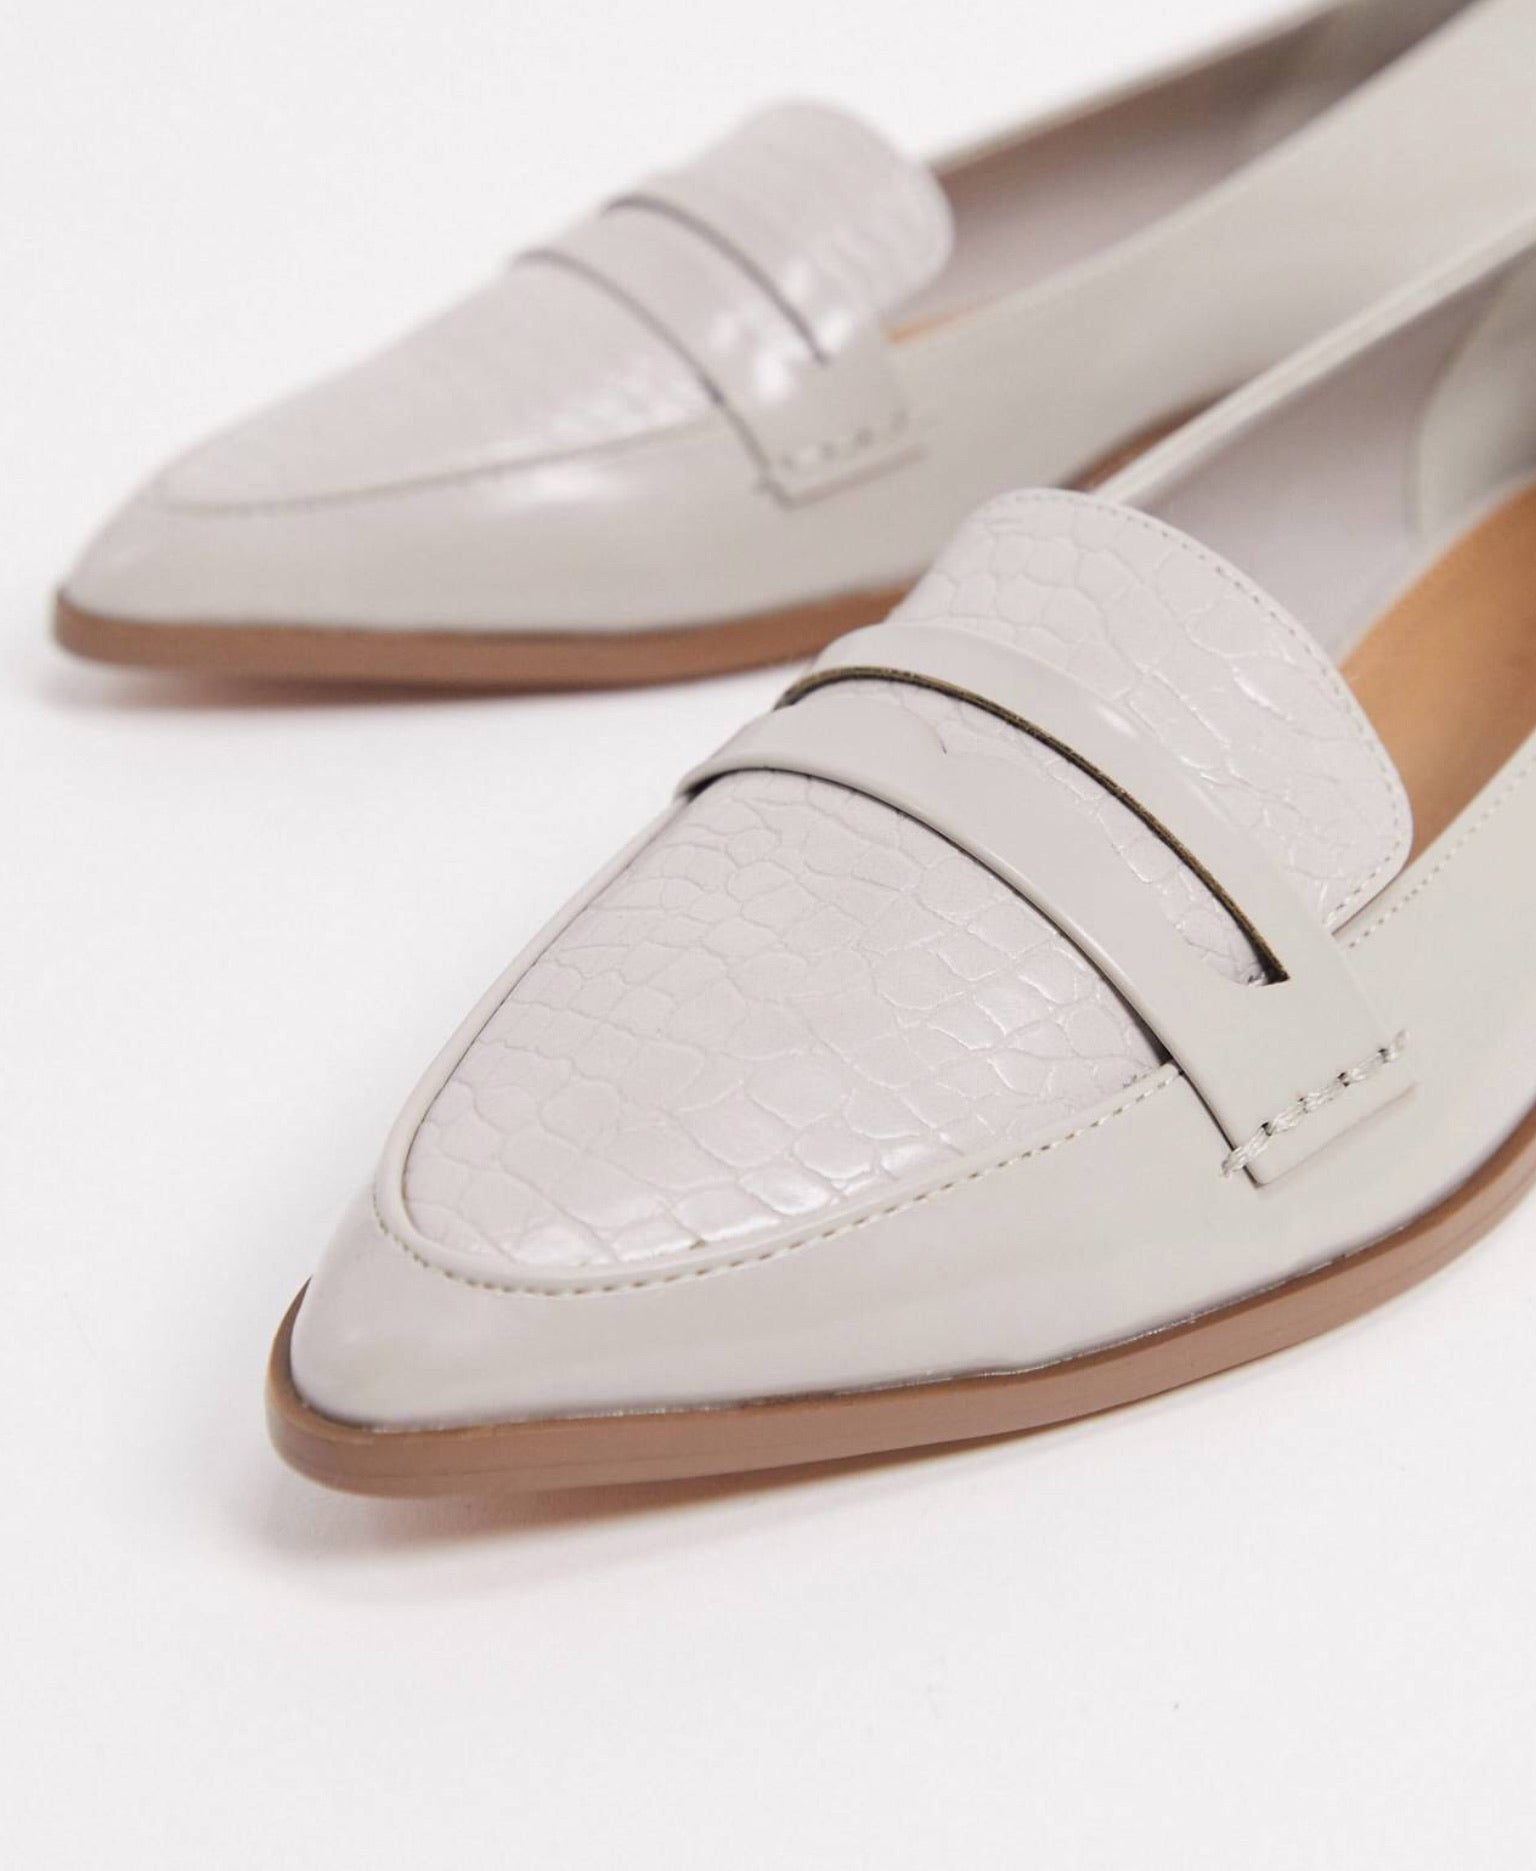 ASOS MALTYBY GREY CROC POINTED LOAFERS